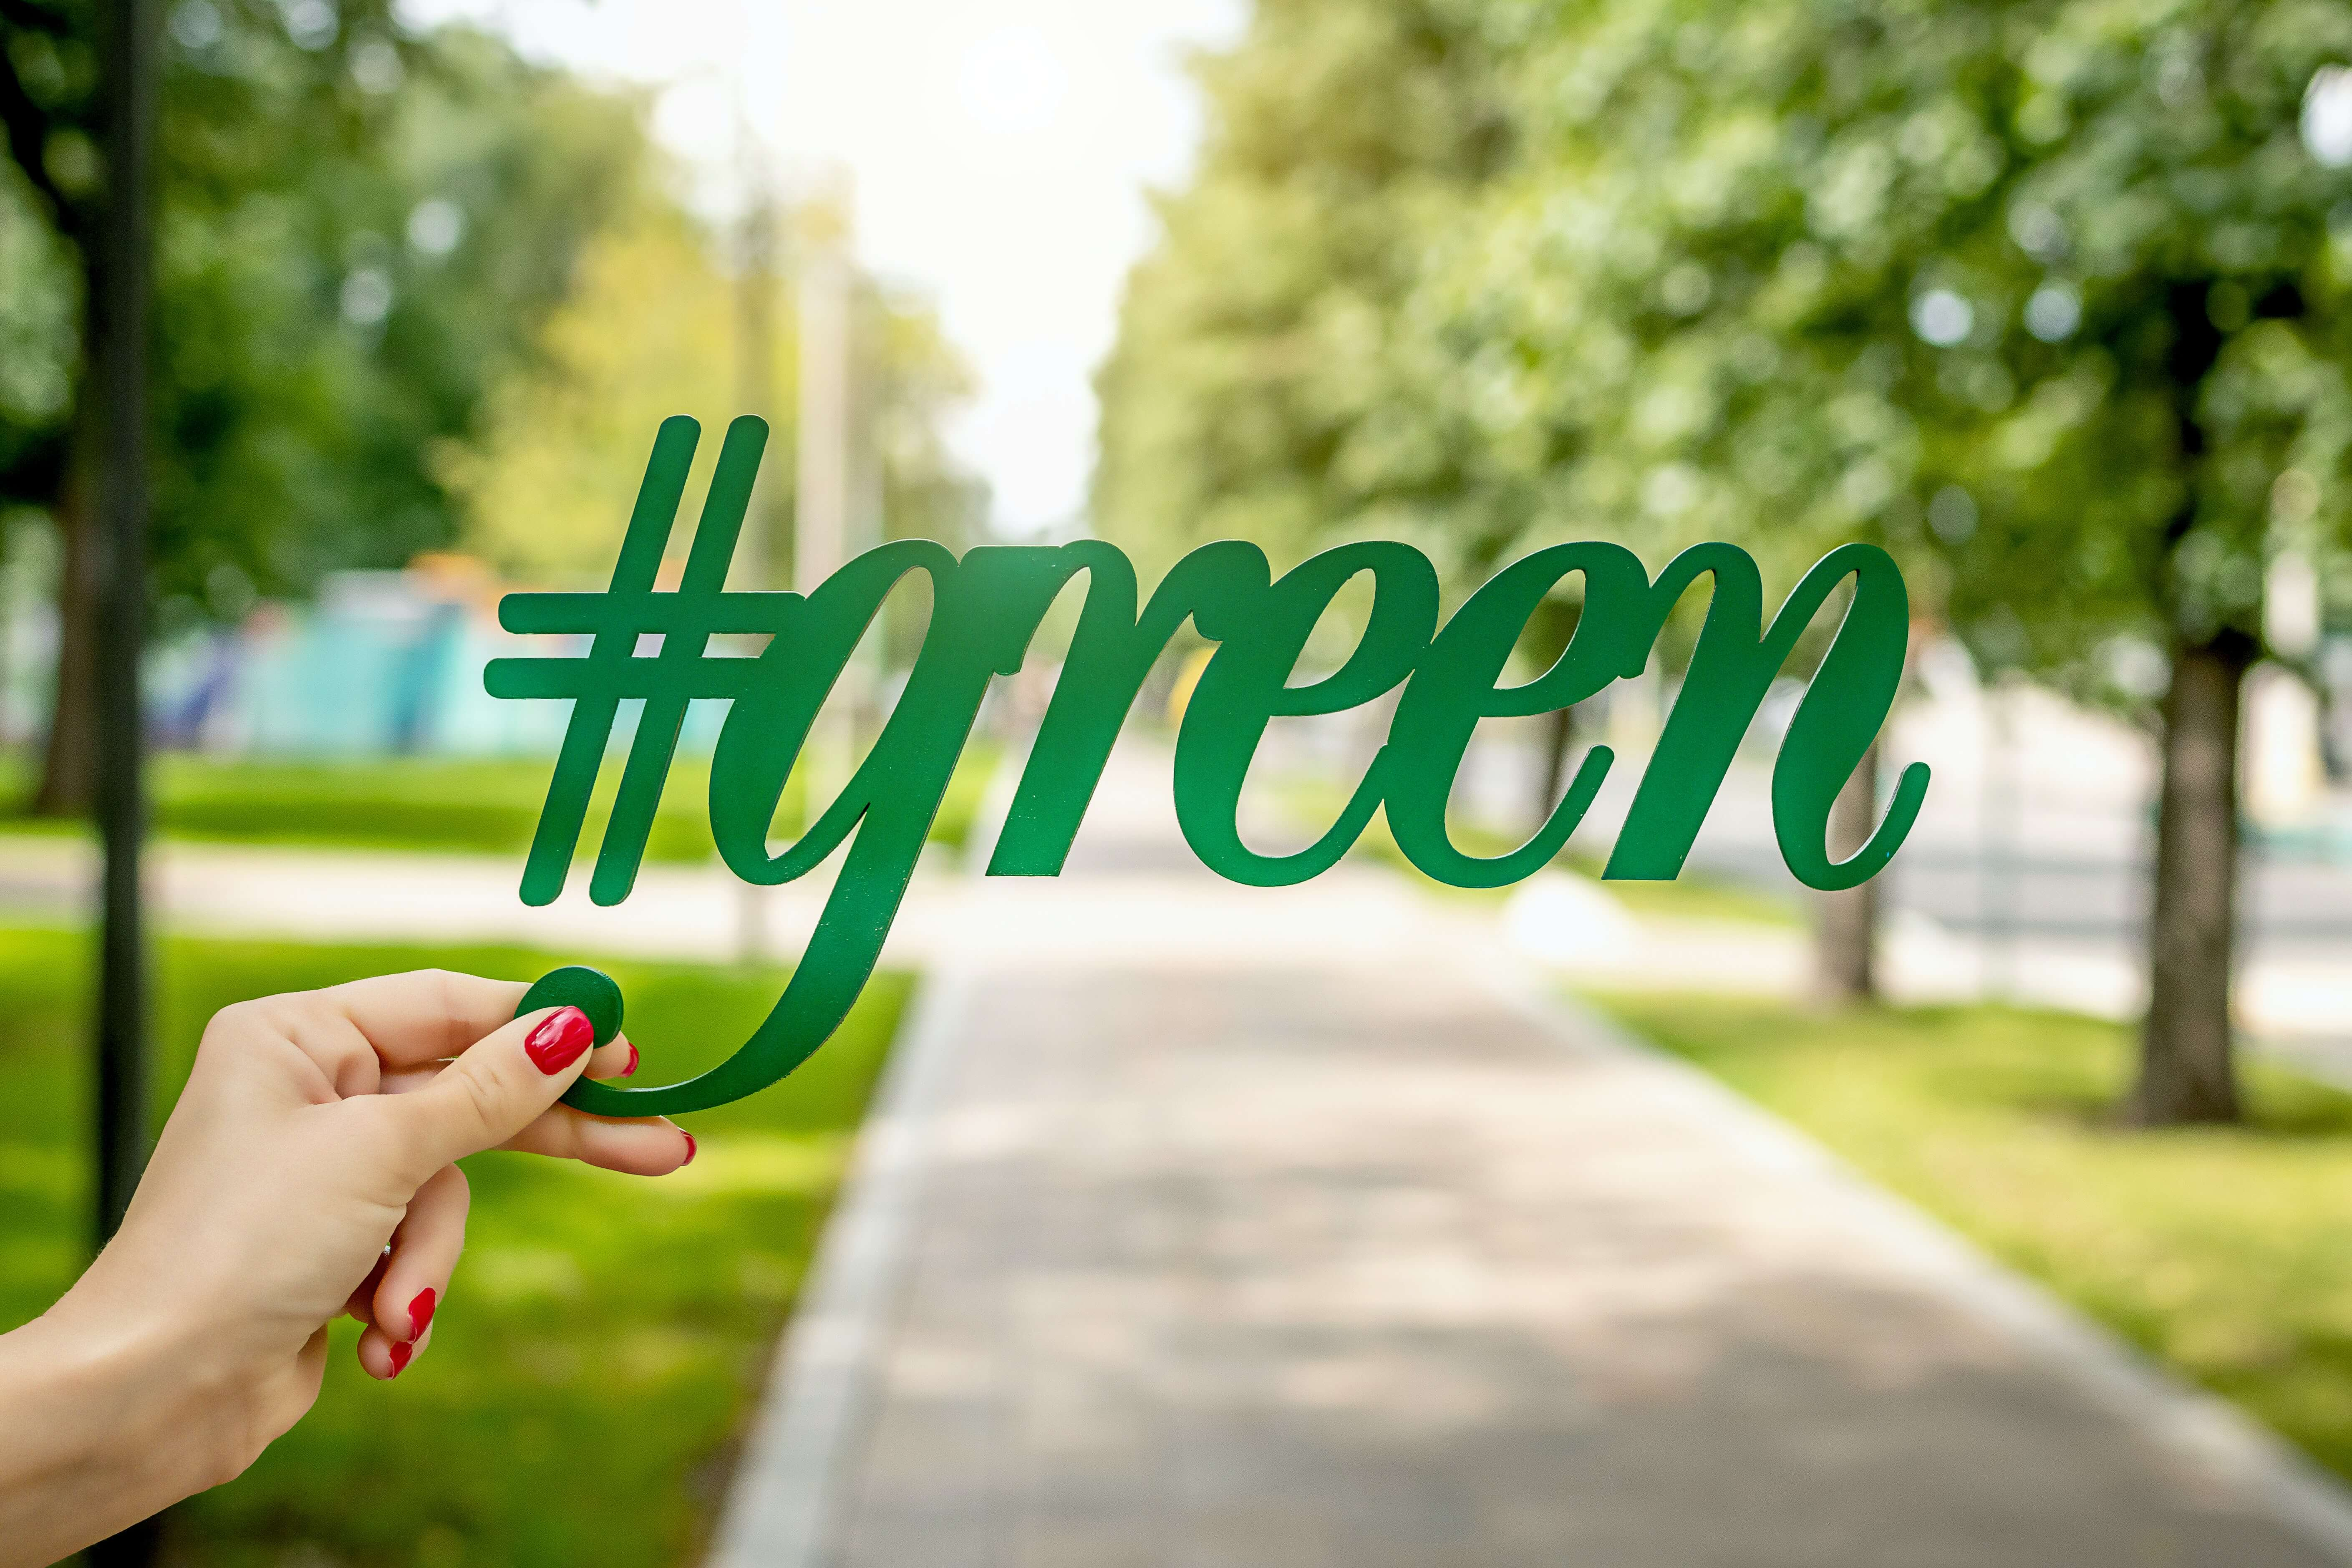 person holding green sign graphic